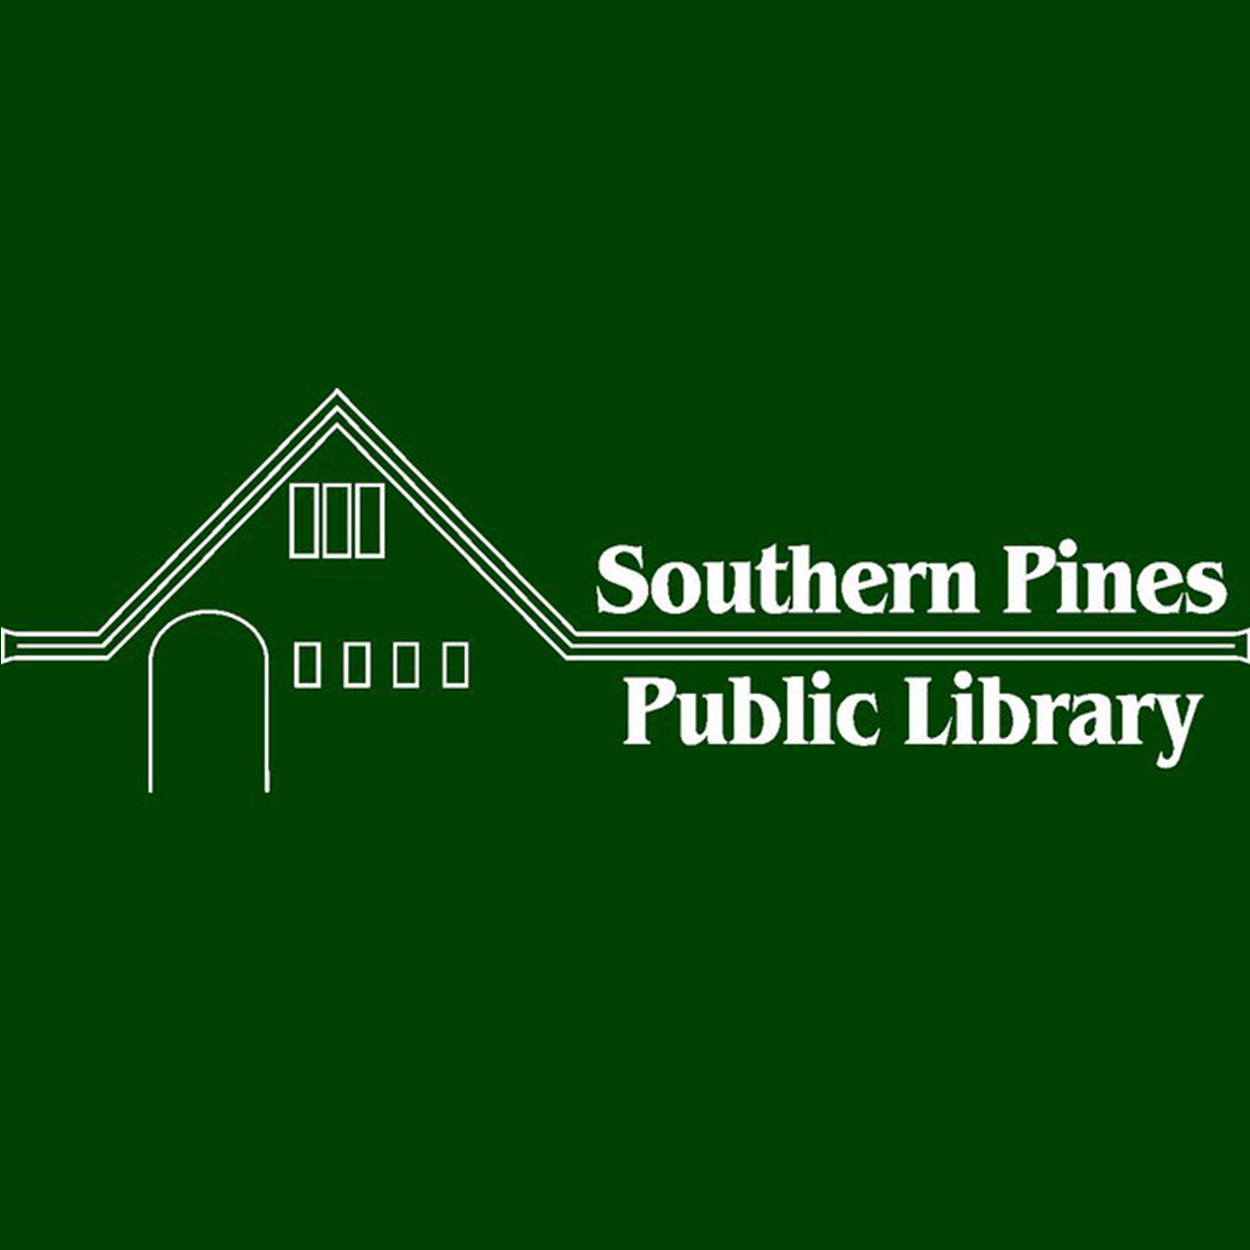 southern pines online dating What's new in southern pines midland road corridor study final report the midland road corridor study final report has been issued by kimley-horn.